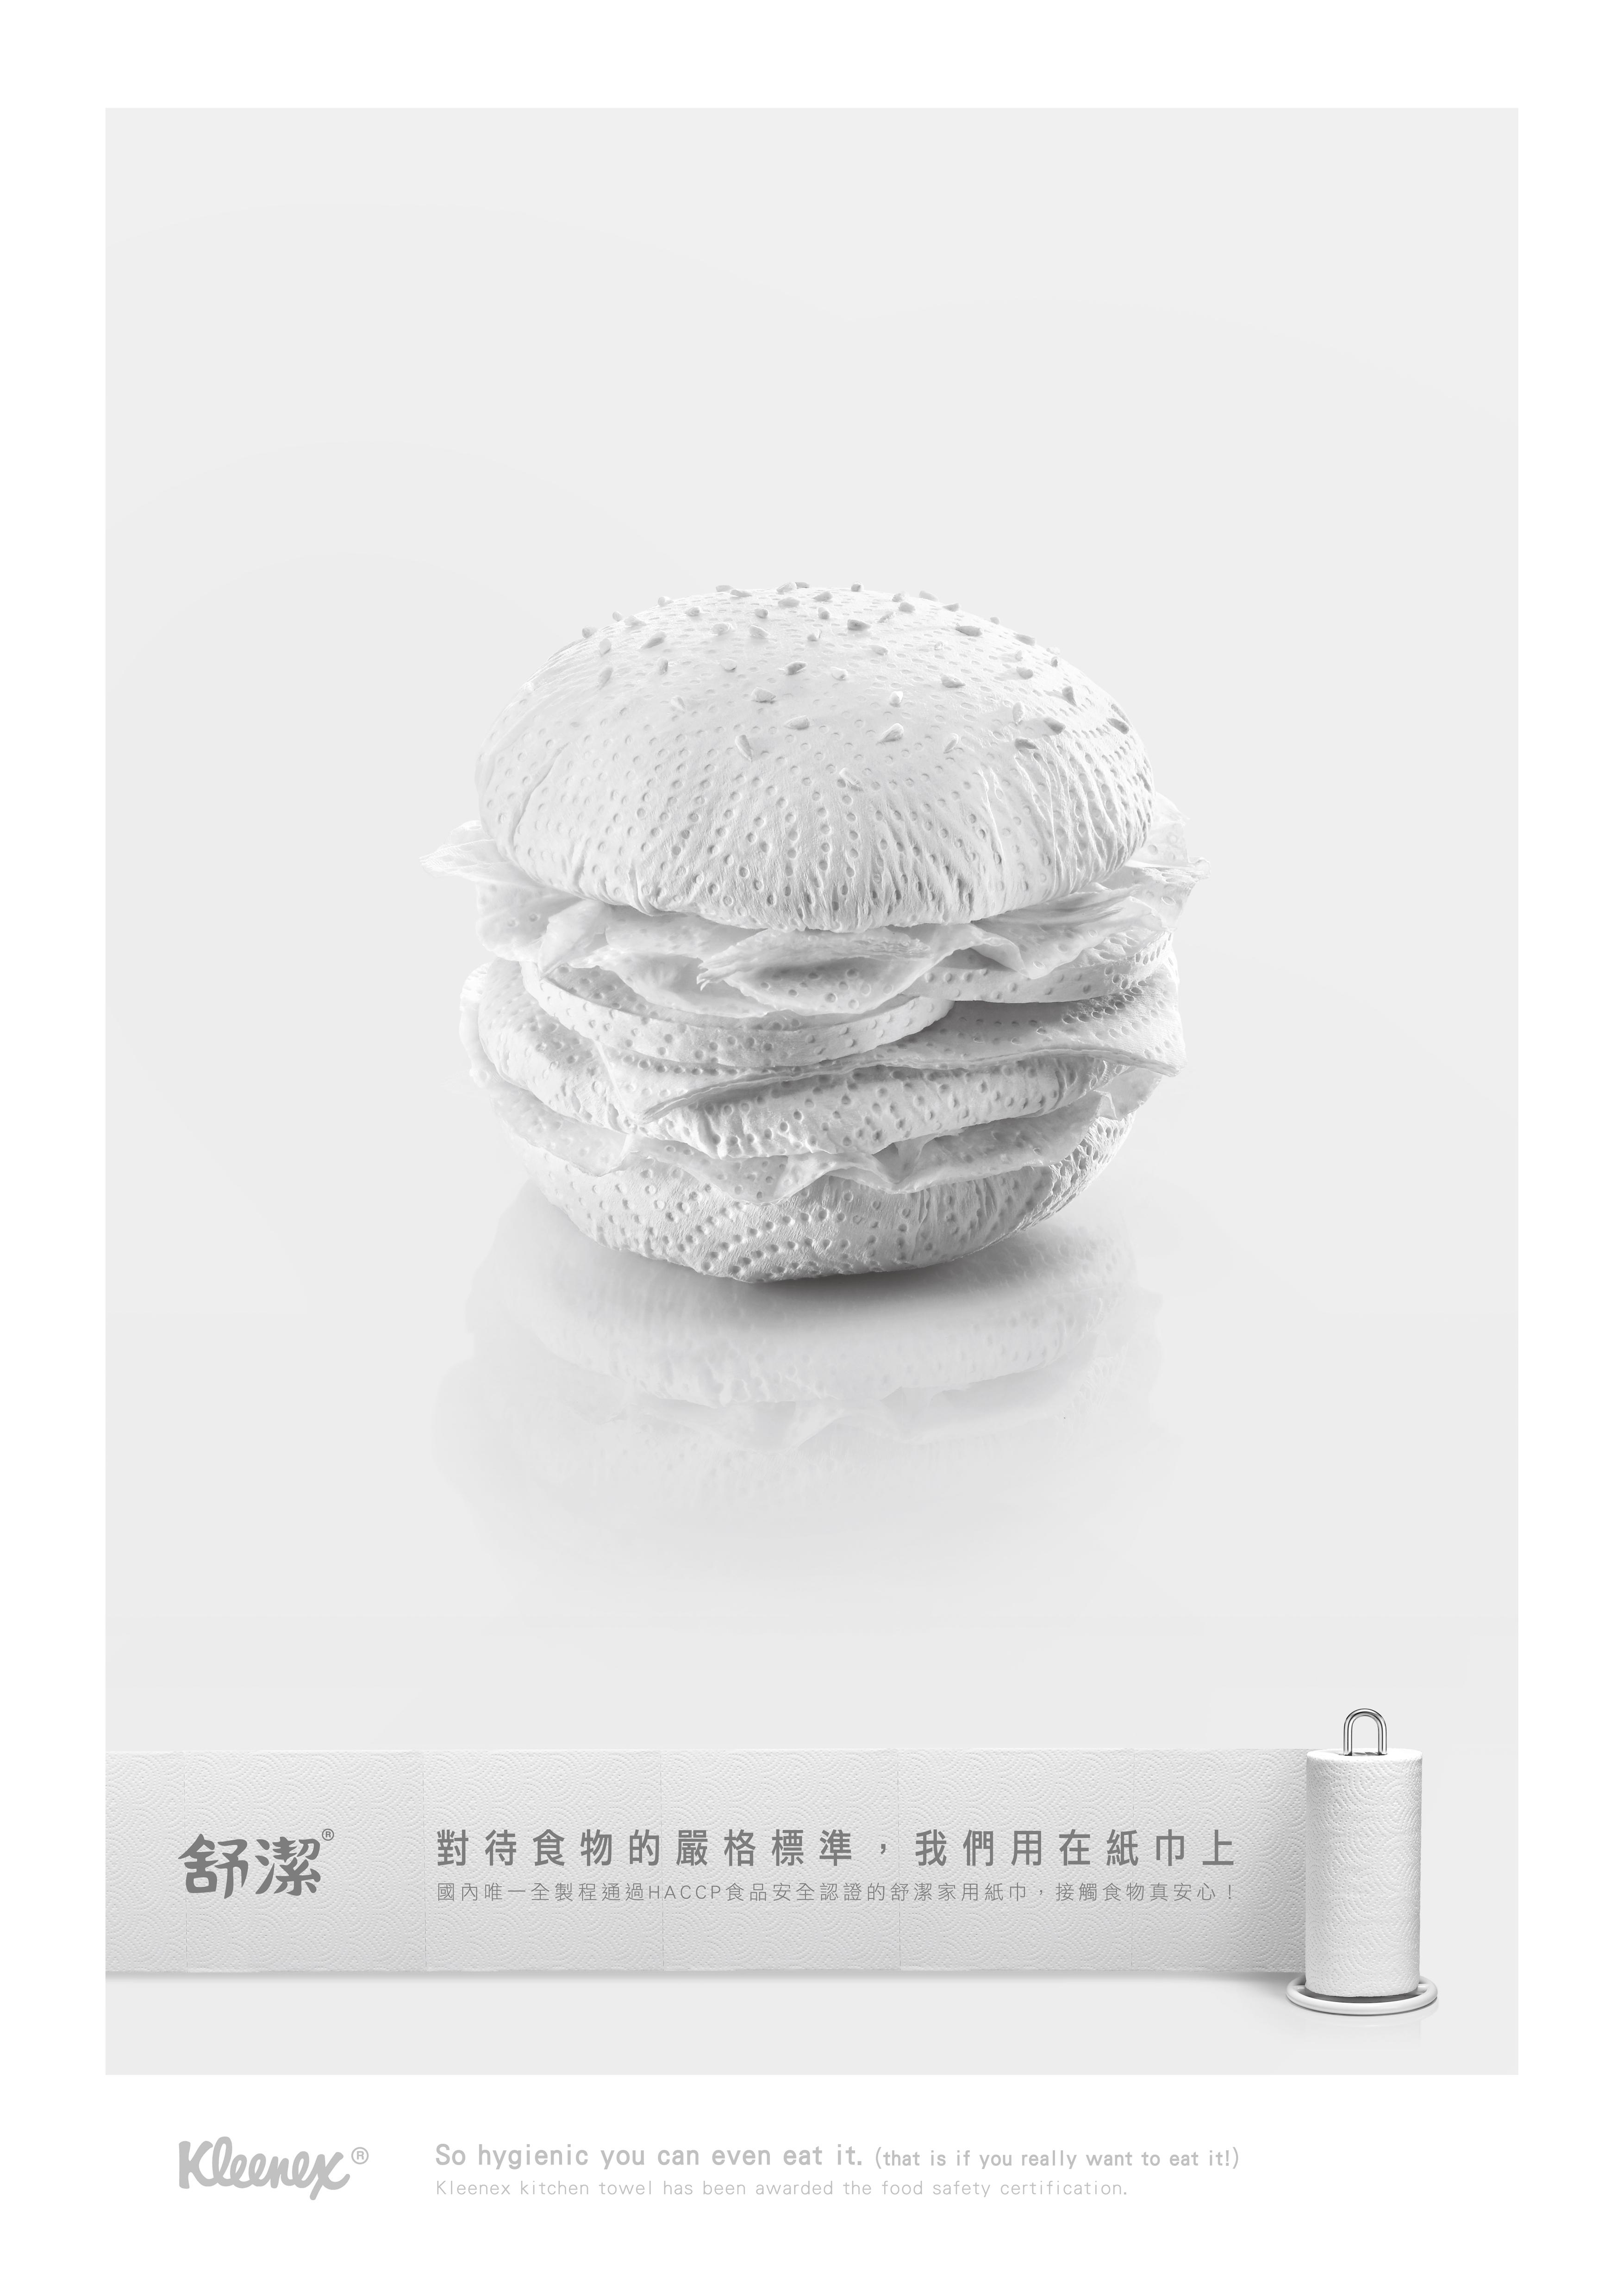 Kimberly-Clark Taiwan + Chicken/Grapes/Hamburger - JWT Taipei